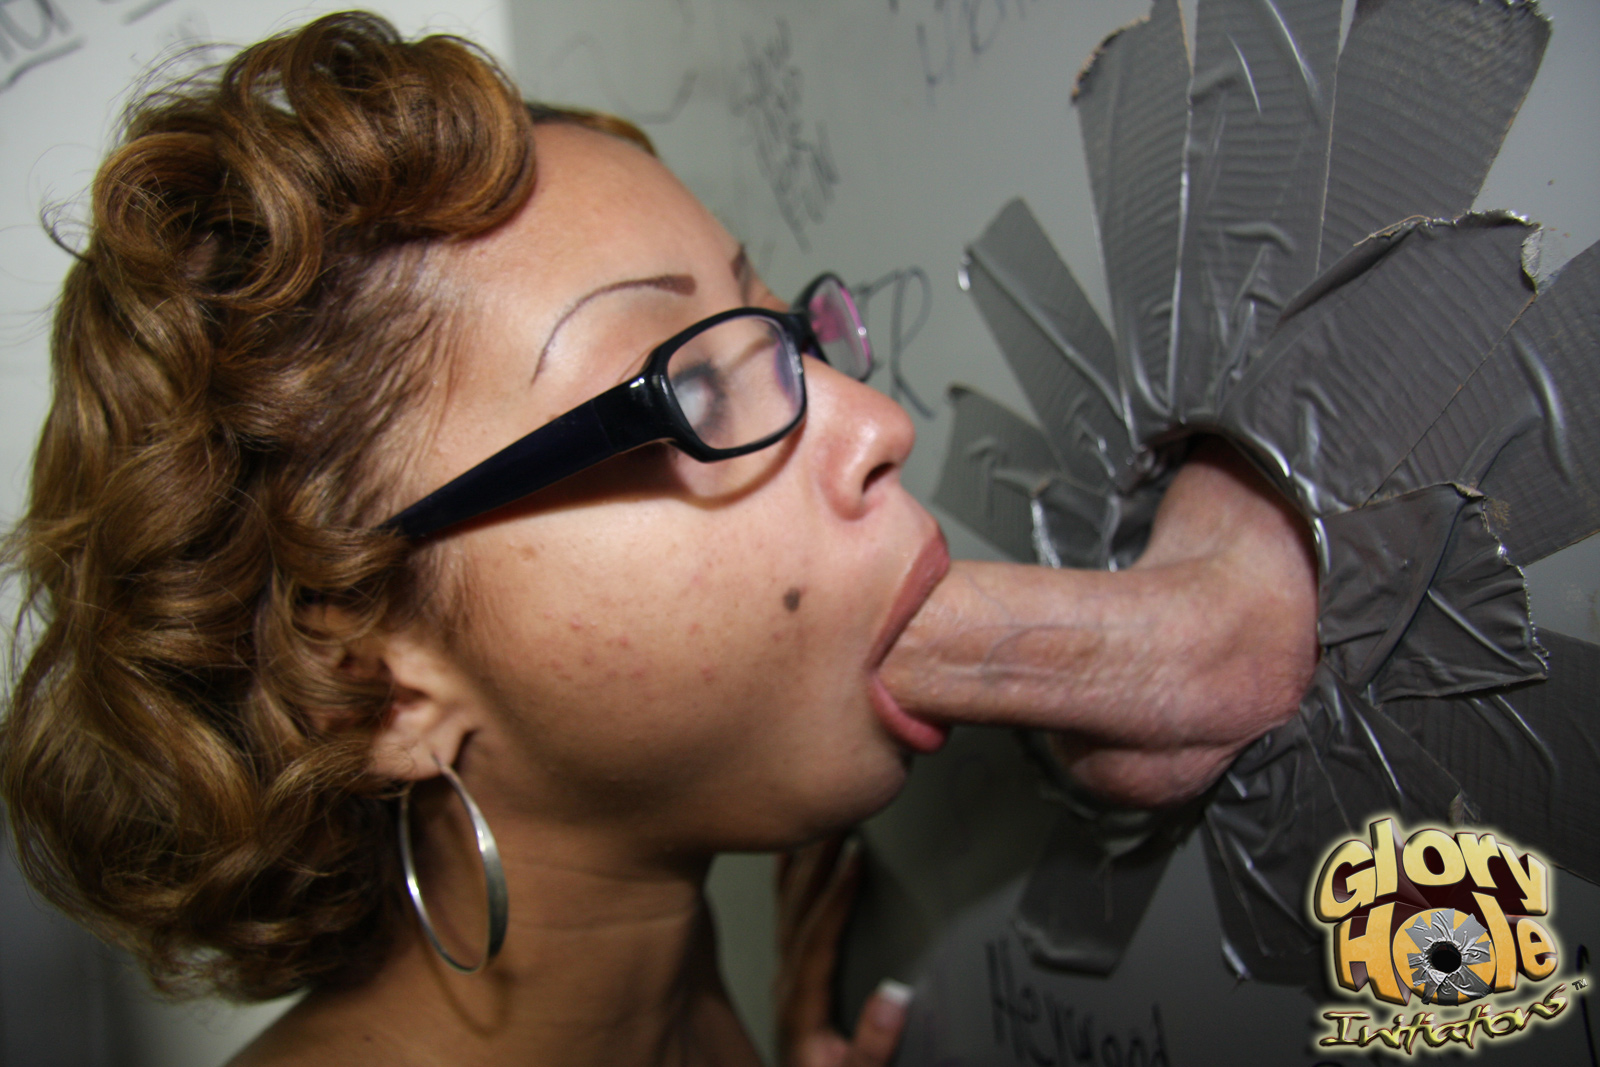 Black men sucking glory hole cock hot gay